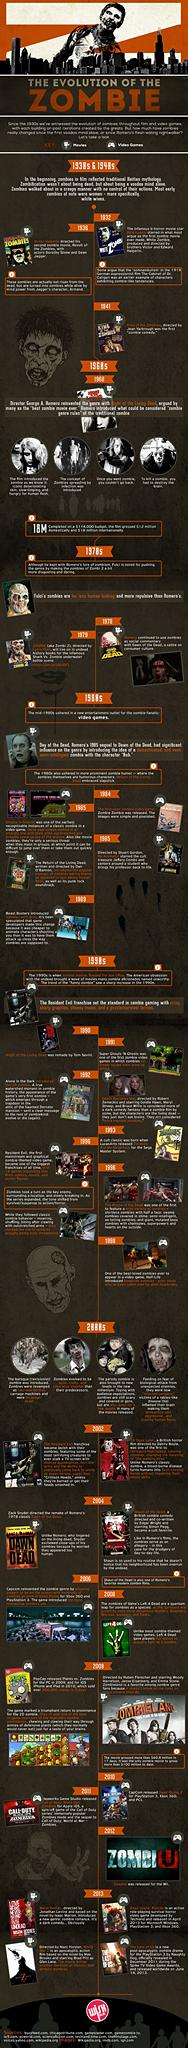 the-evolution-of-the-zombie-infographic_529c57b52ed59